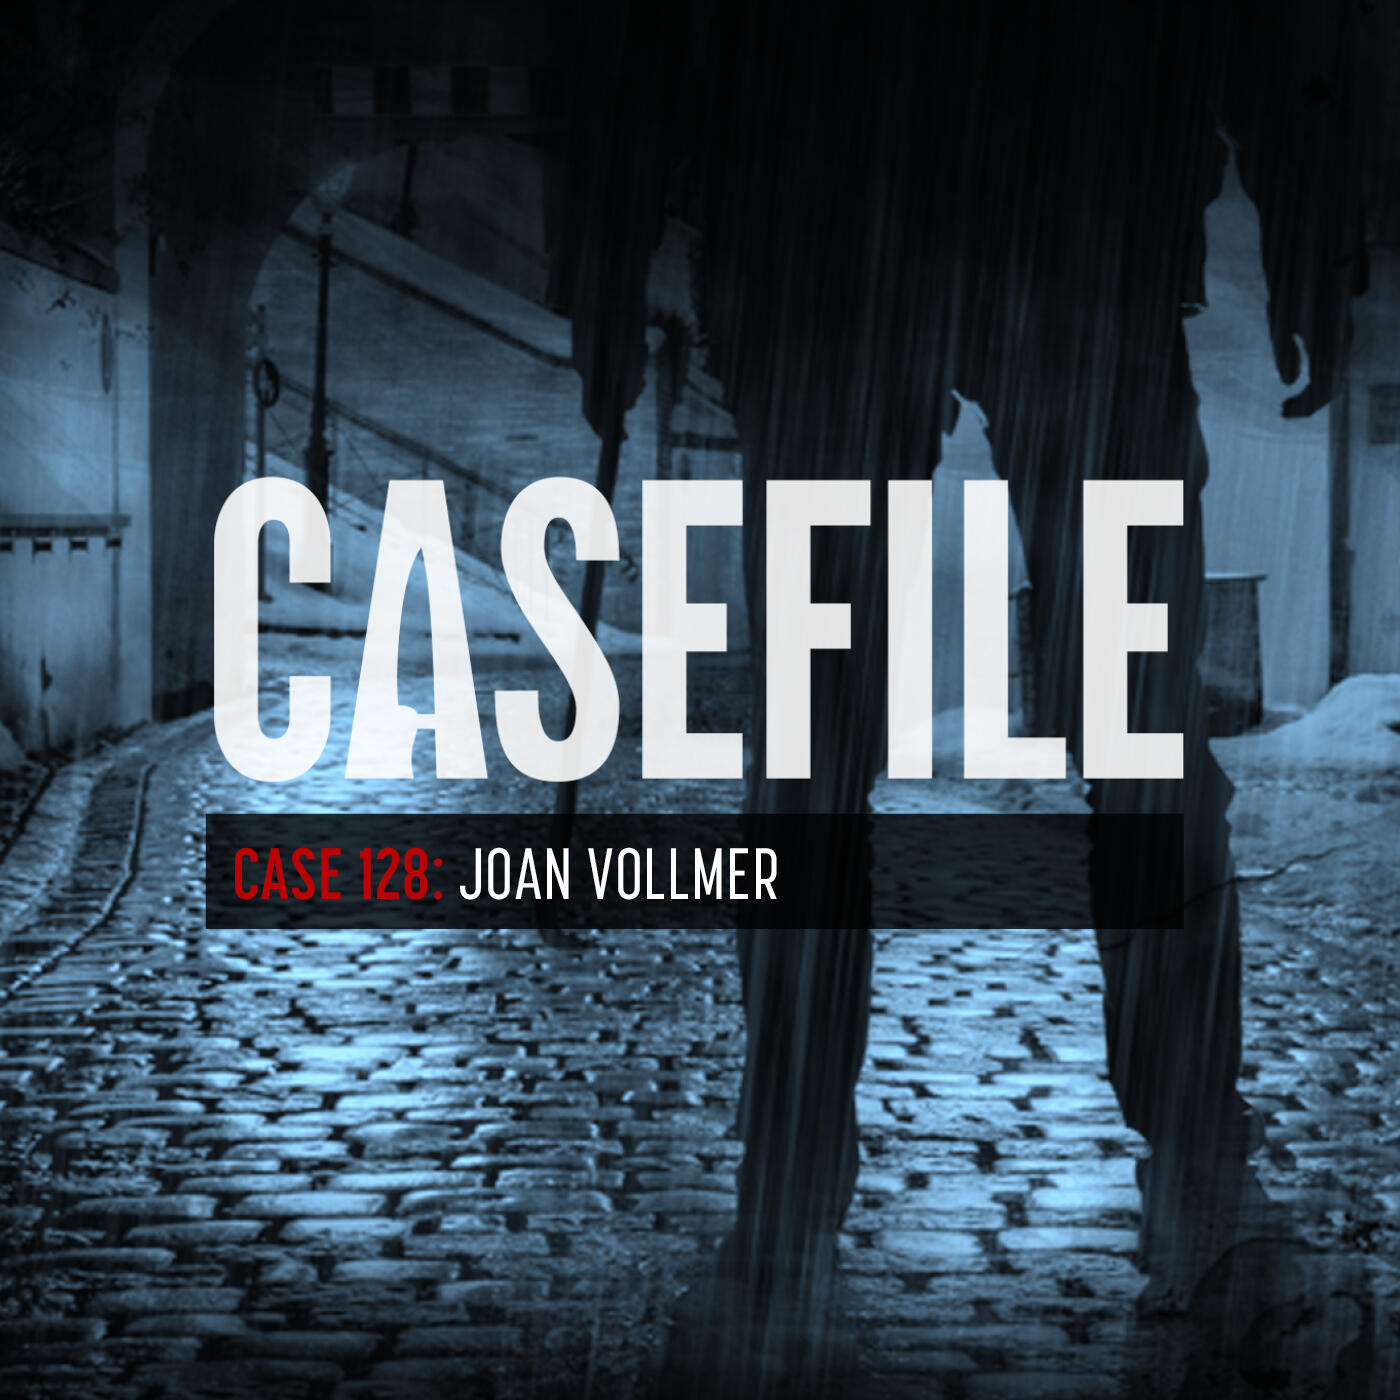 Case 128: Joan Vollmer